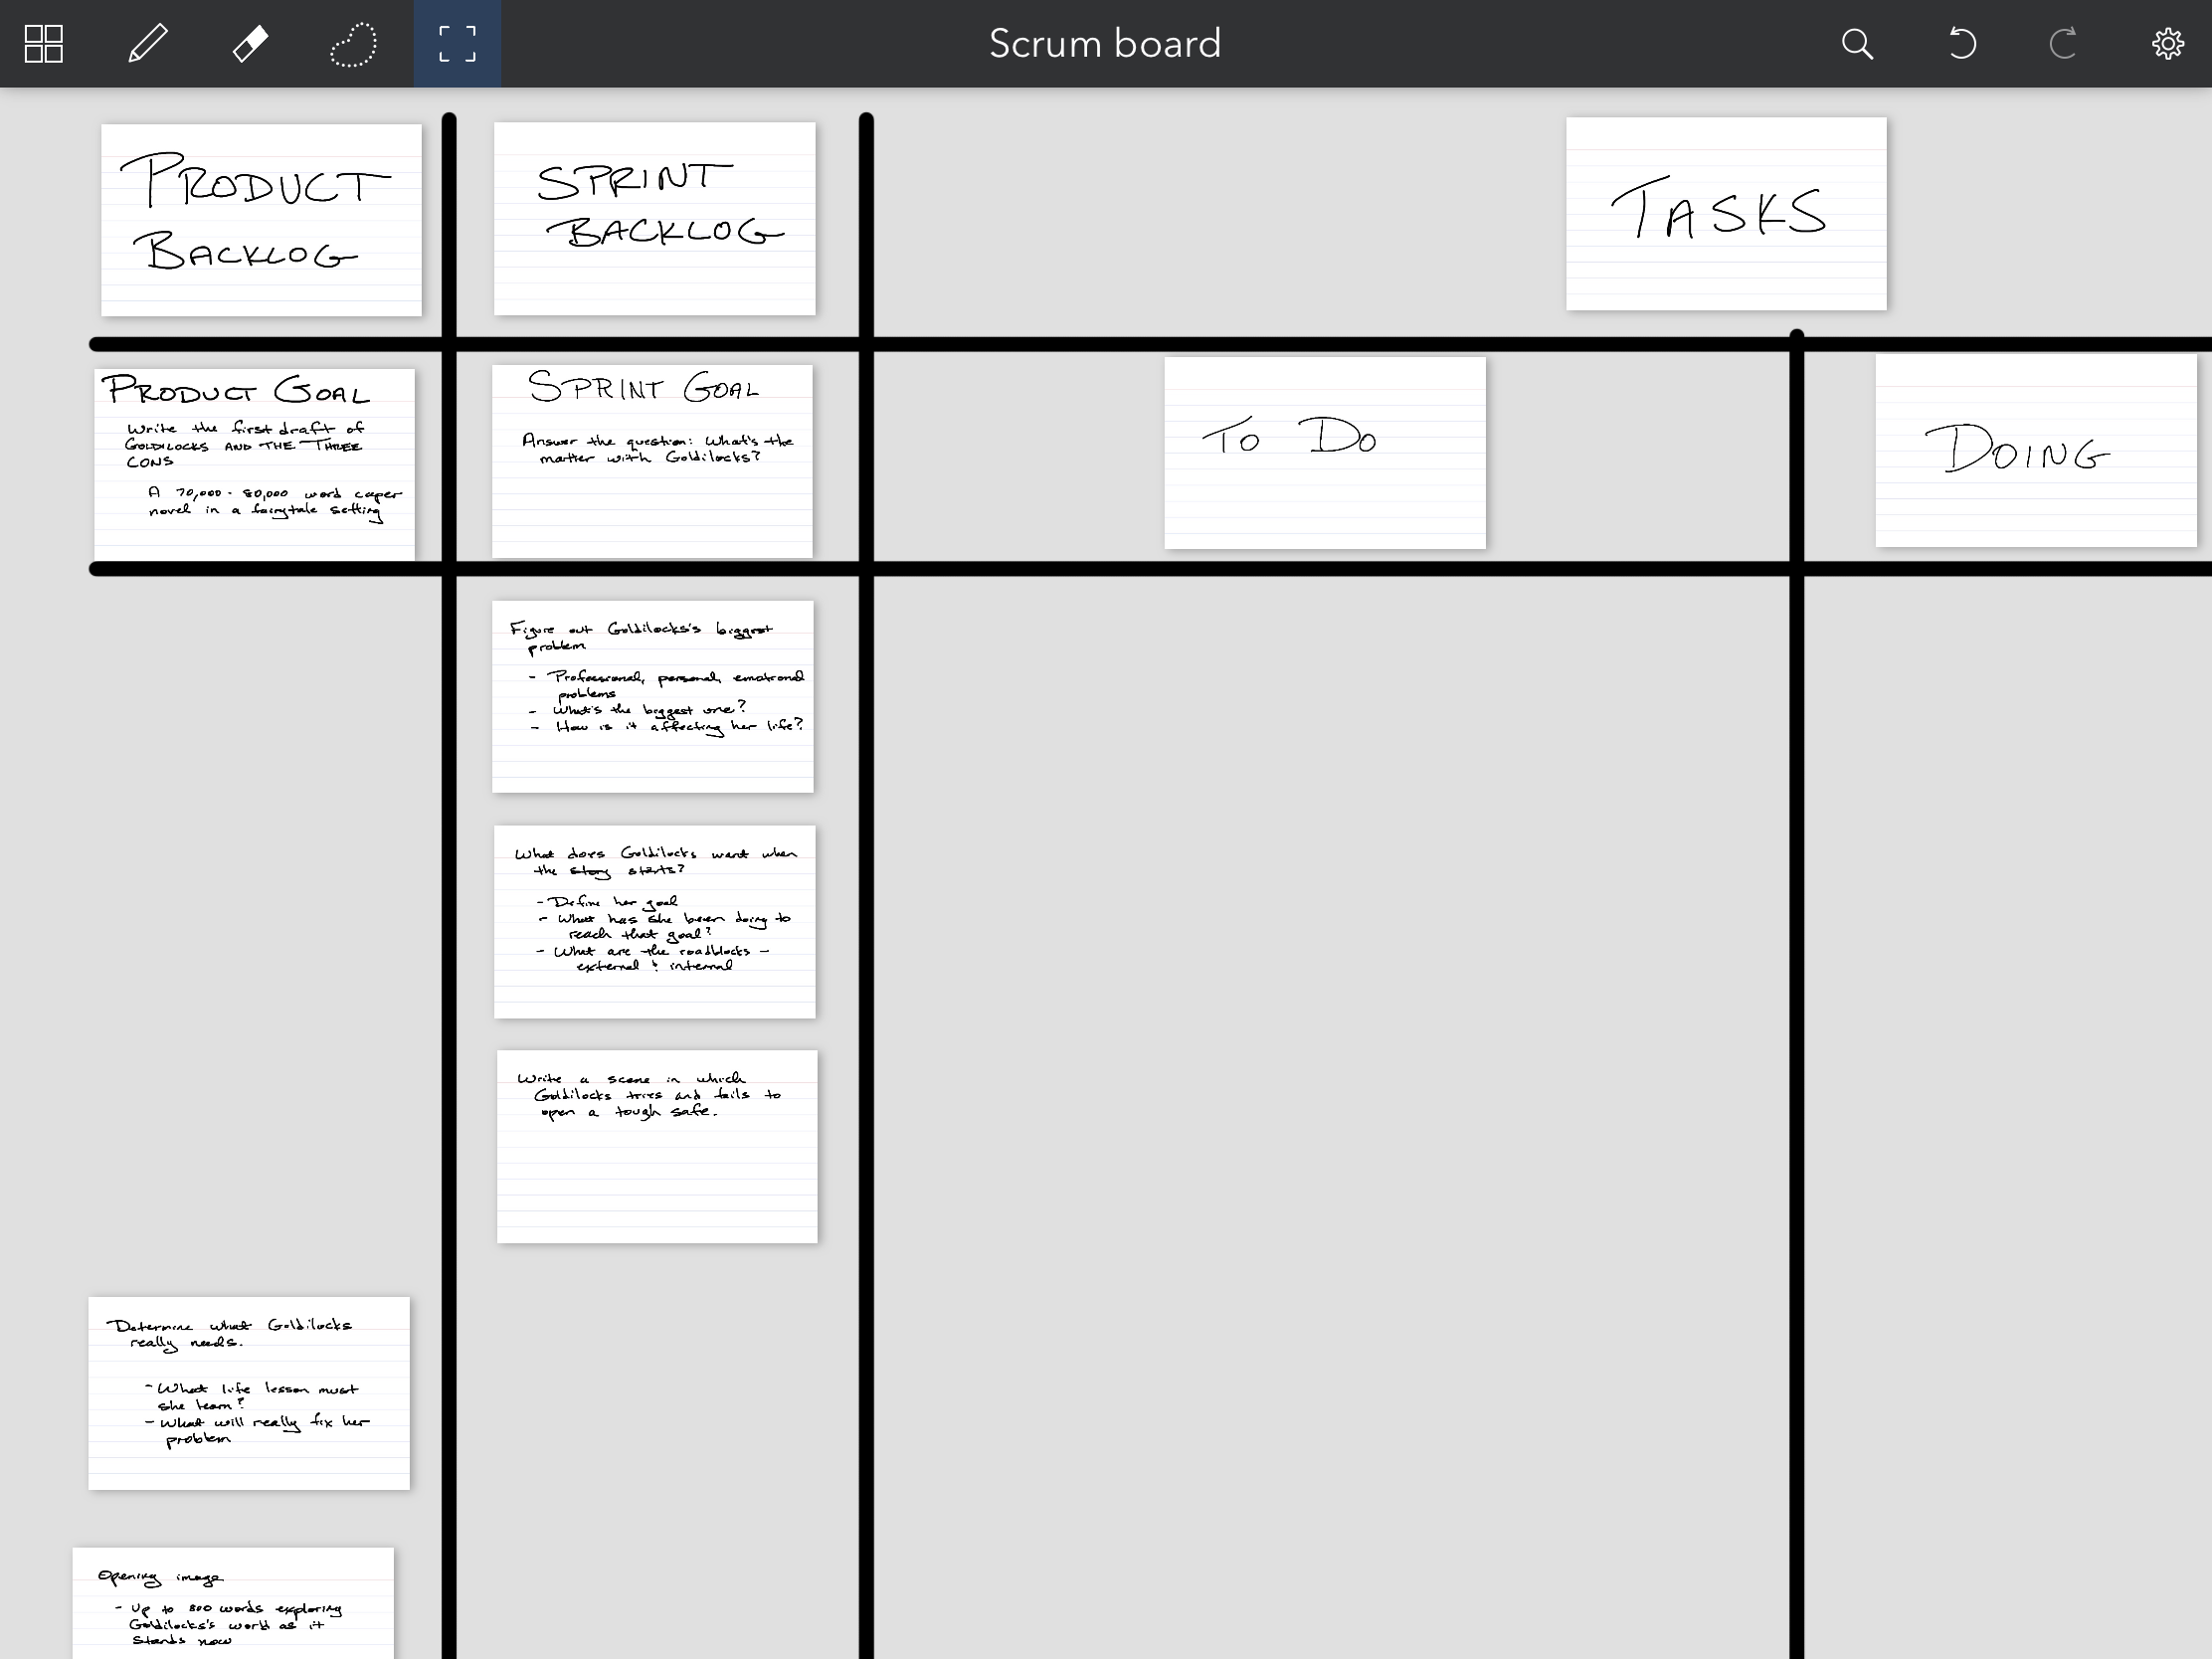 A closeup of the Sprint Goal with three items moved from Product Backlog to Sprint Backlog